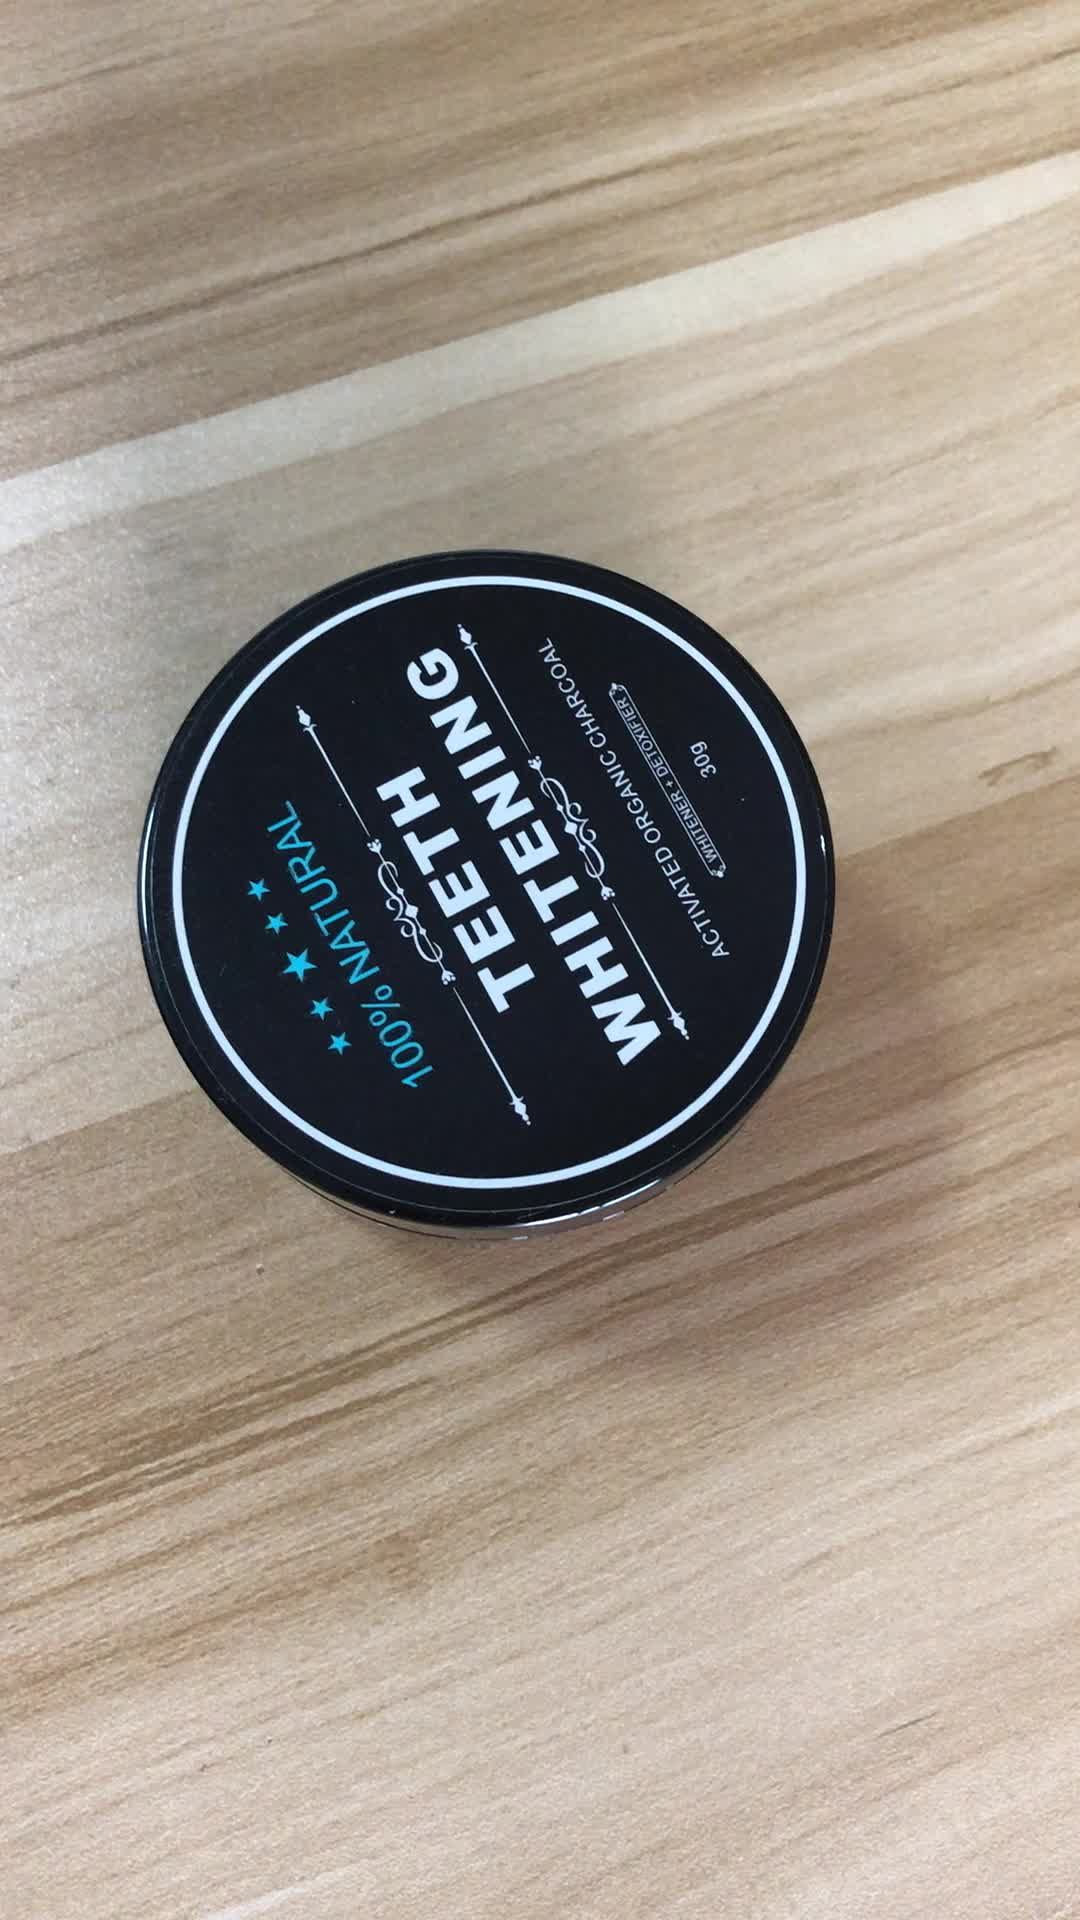 Daily Use Teeth whitening charcoal powder Oral Hygiene Cleaning Activated Bamboo Charcoal Powder